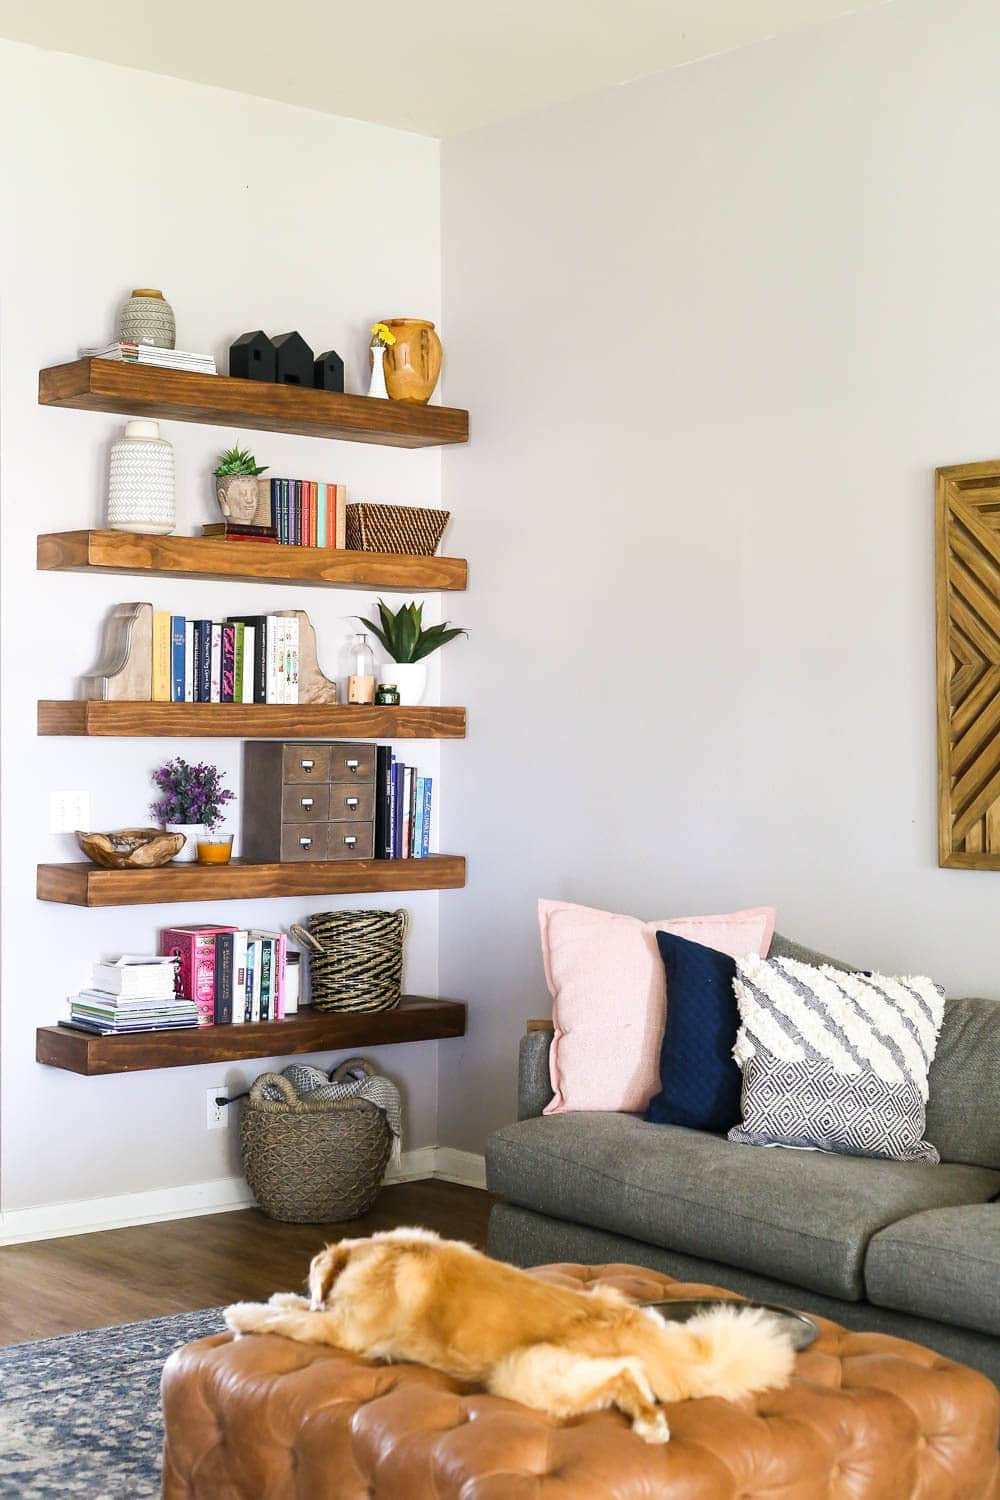 open shelving styled with decorative objects